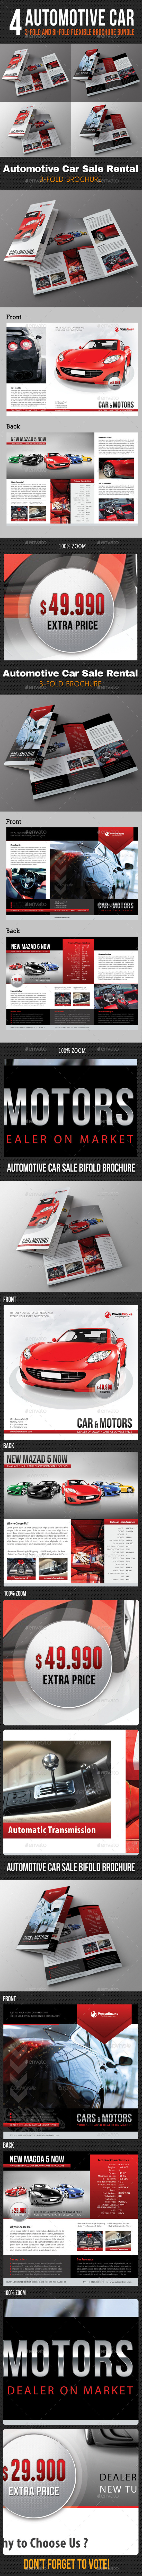 4 Automotive Car Sale Rental Brochure Bundle - Corporate Brochures